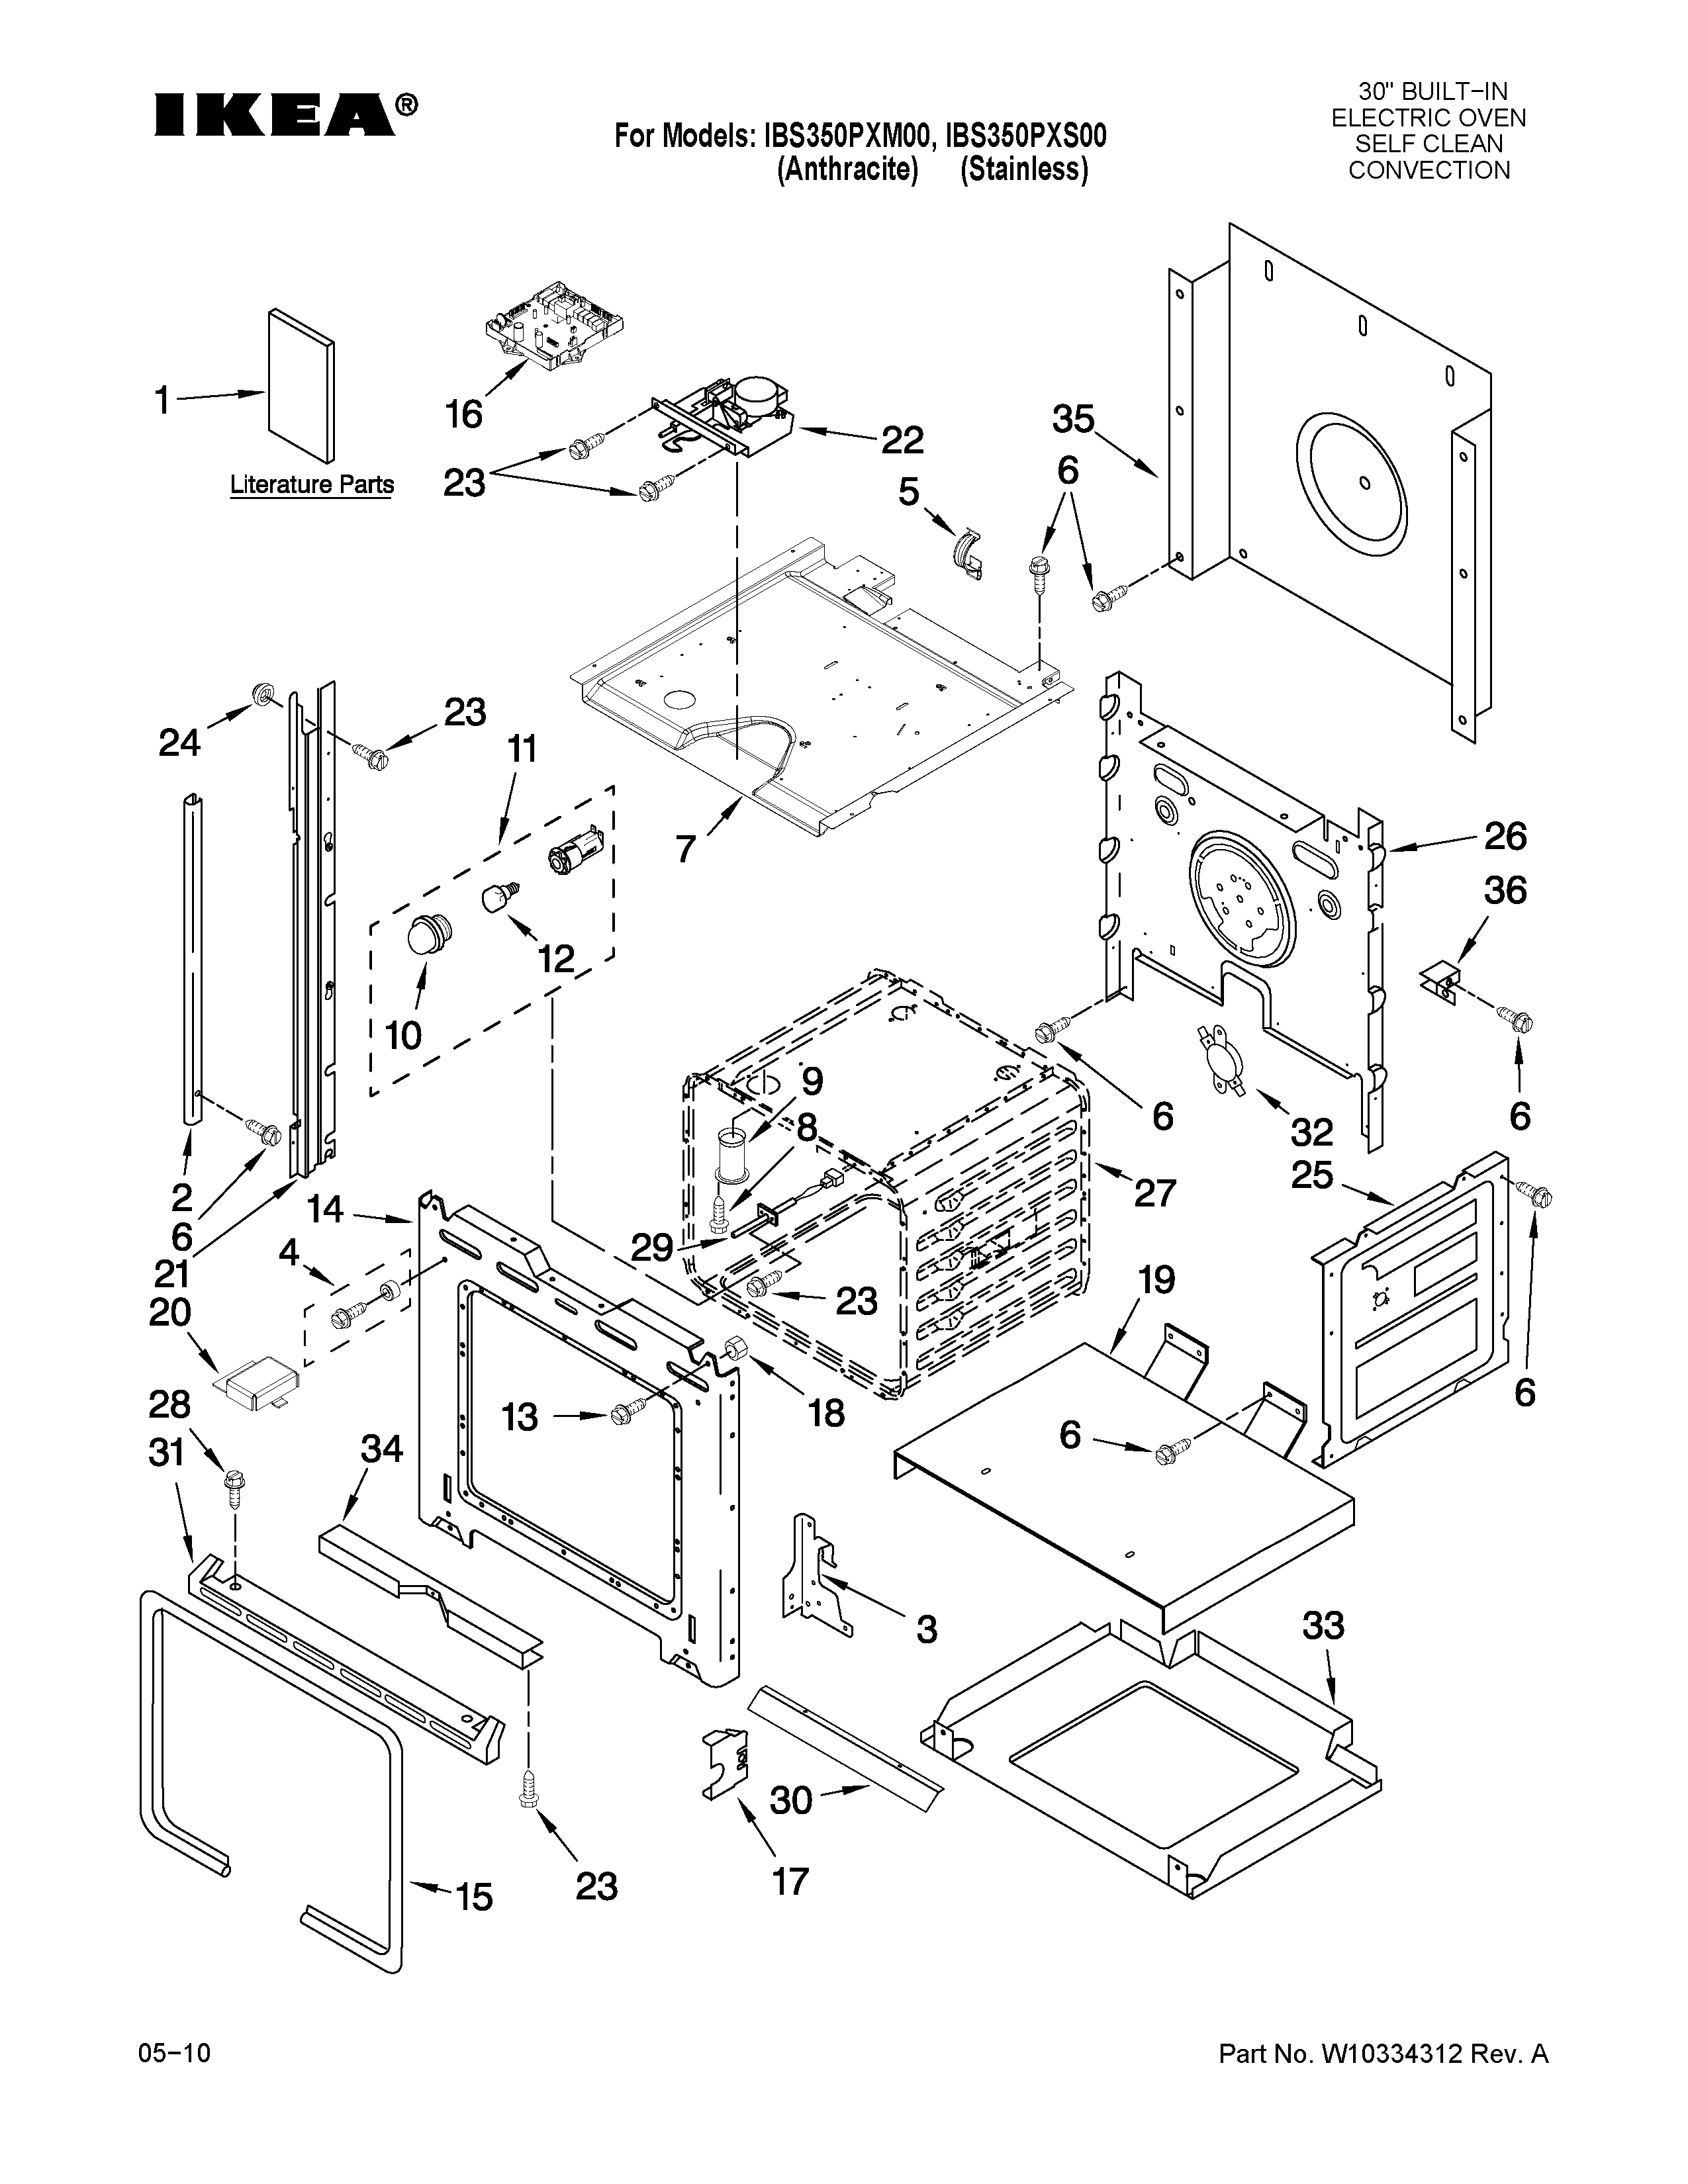 W1005166 00001g 25503300 drawing narrative pinterest an example of a confusing ikea instruction manual this manual has so many steps to it that i felt overwhelmed looking at it maybe if the instructions were pooptronica Images